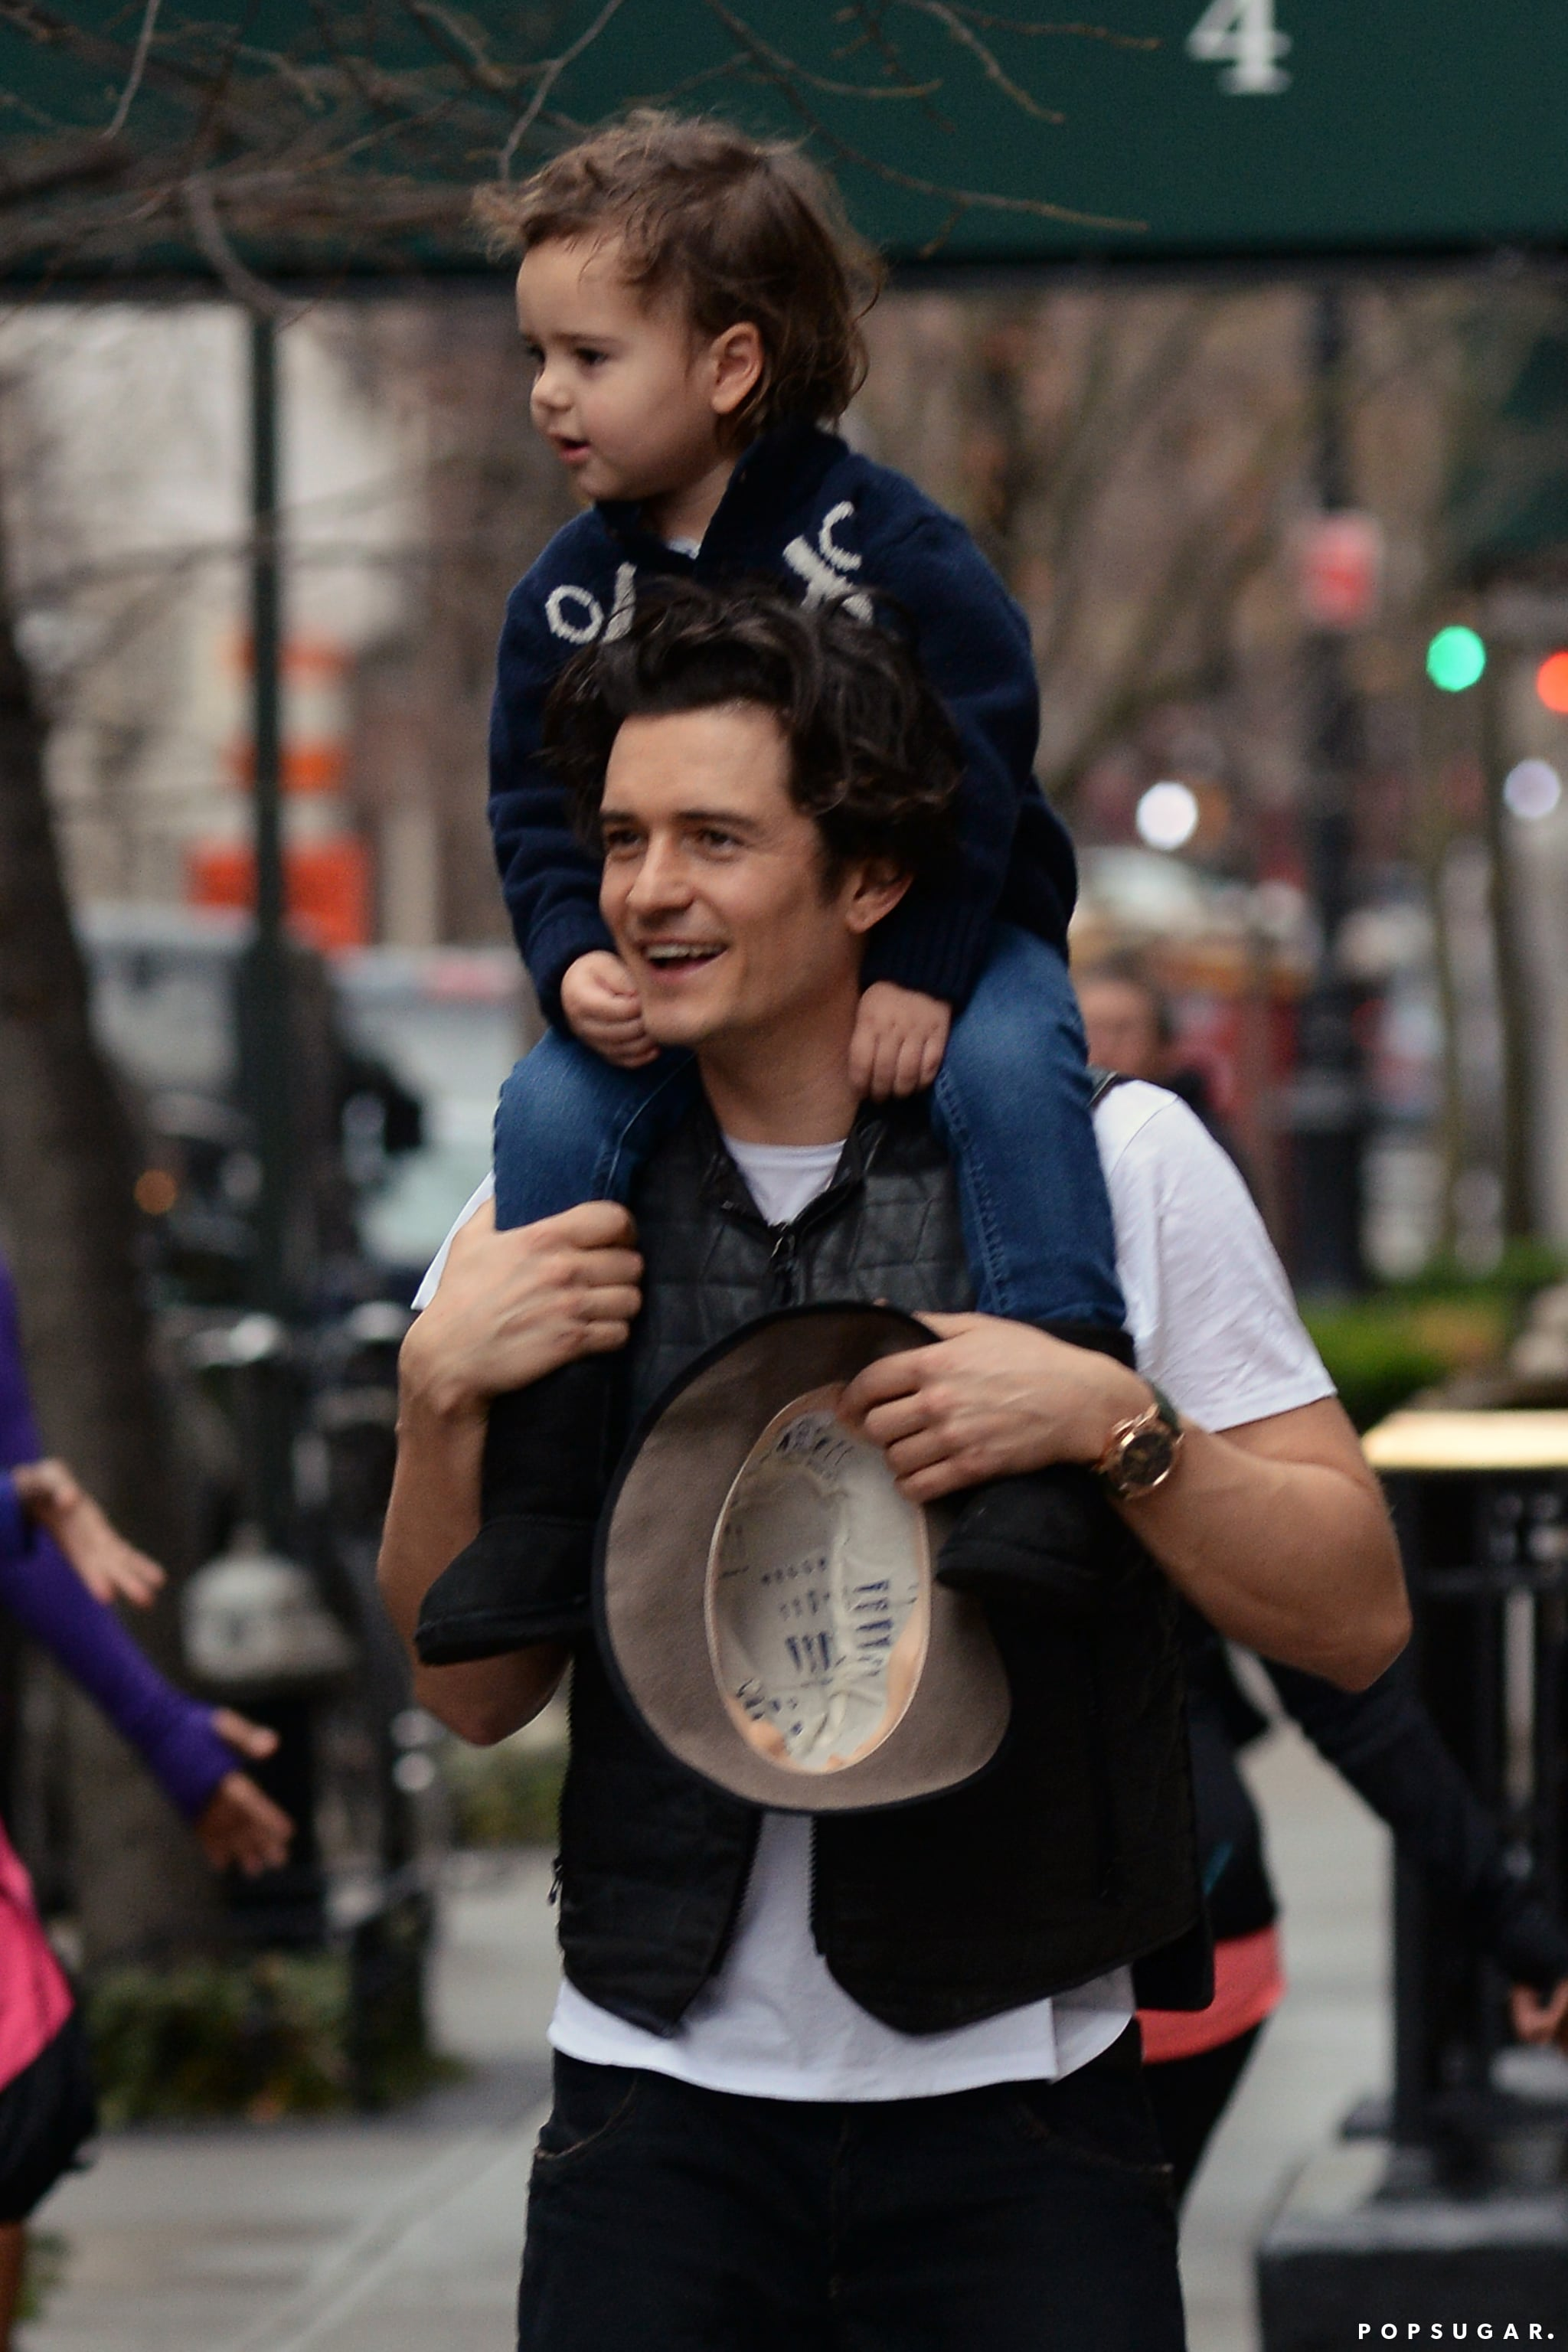 Orlando Bloom gave his son, Flynn, a piggyback ride during a walk in NYC.